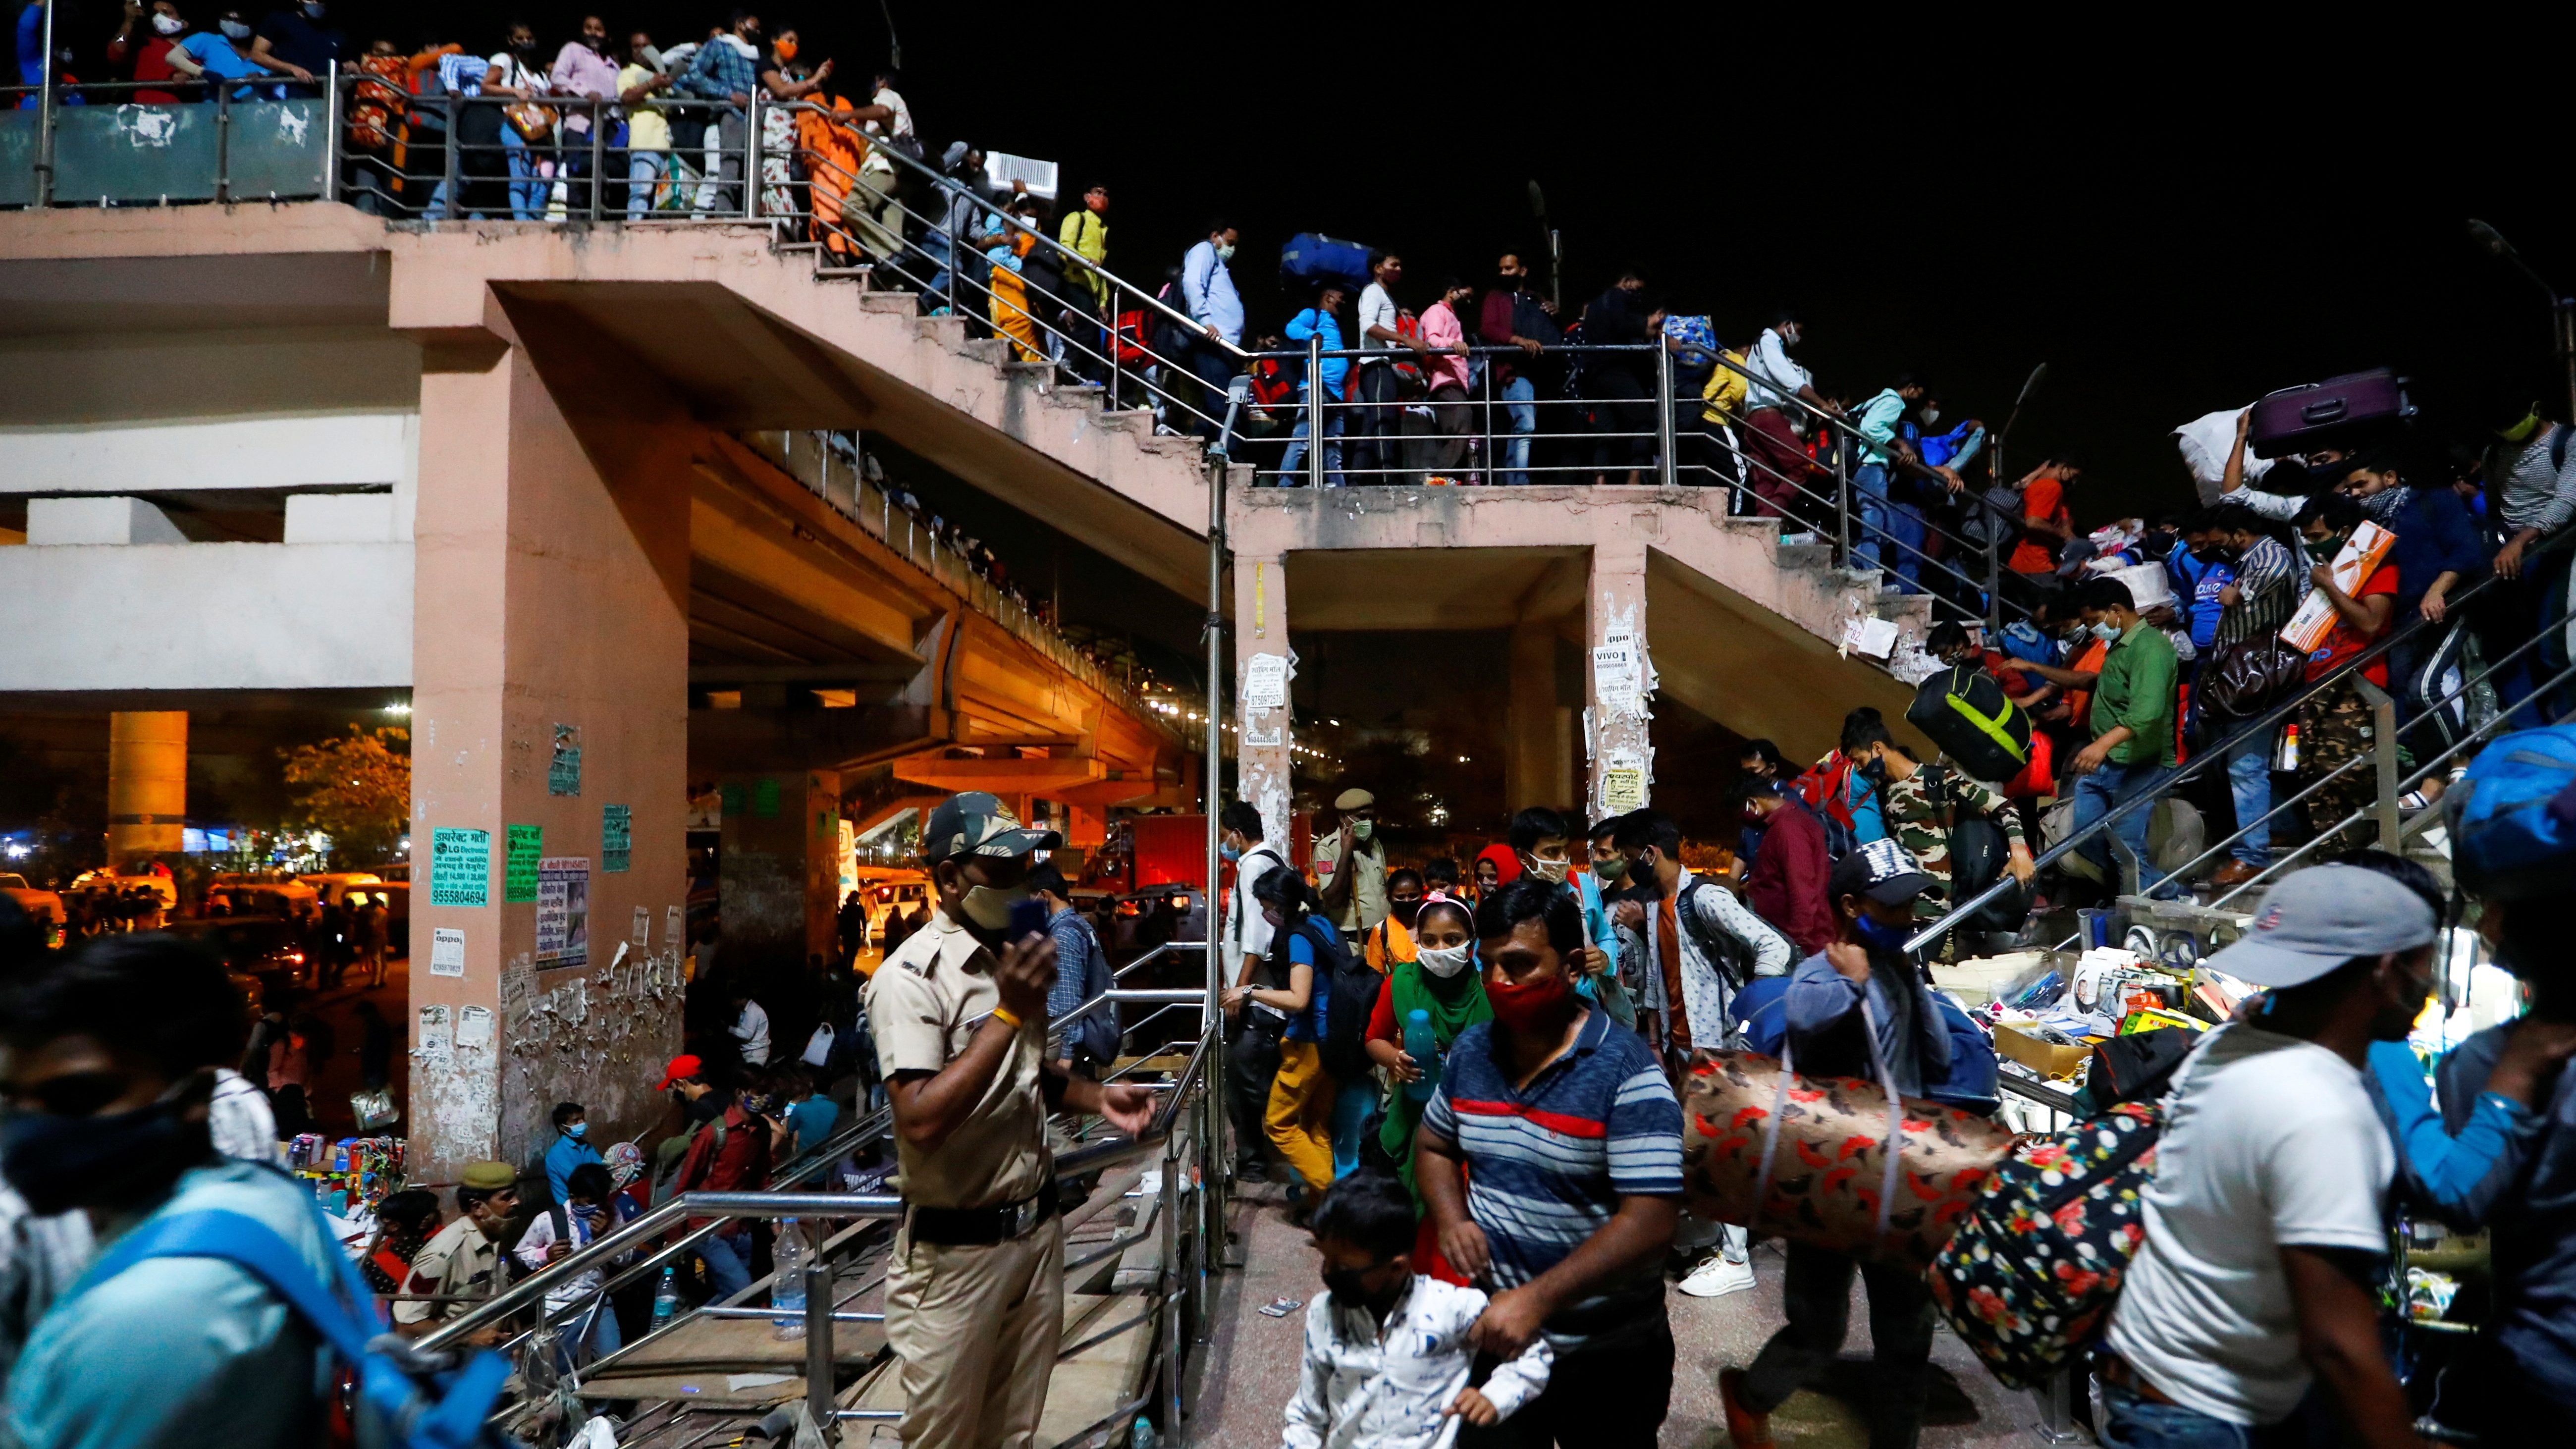 Migrant workers arrive at a bus station to board buses to return to their villages after the Delhi government ordered a six-day lockdown